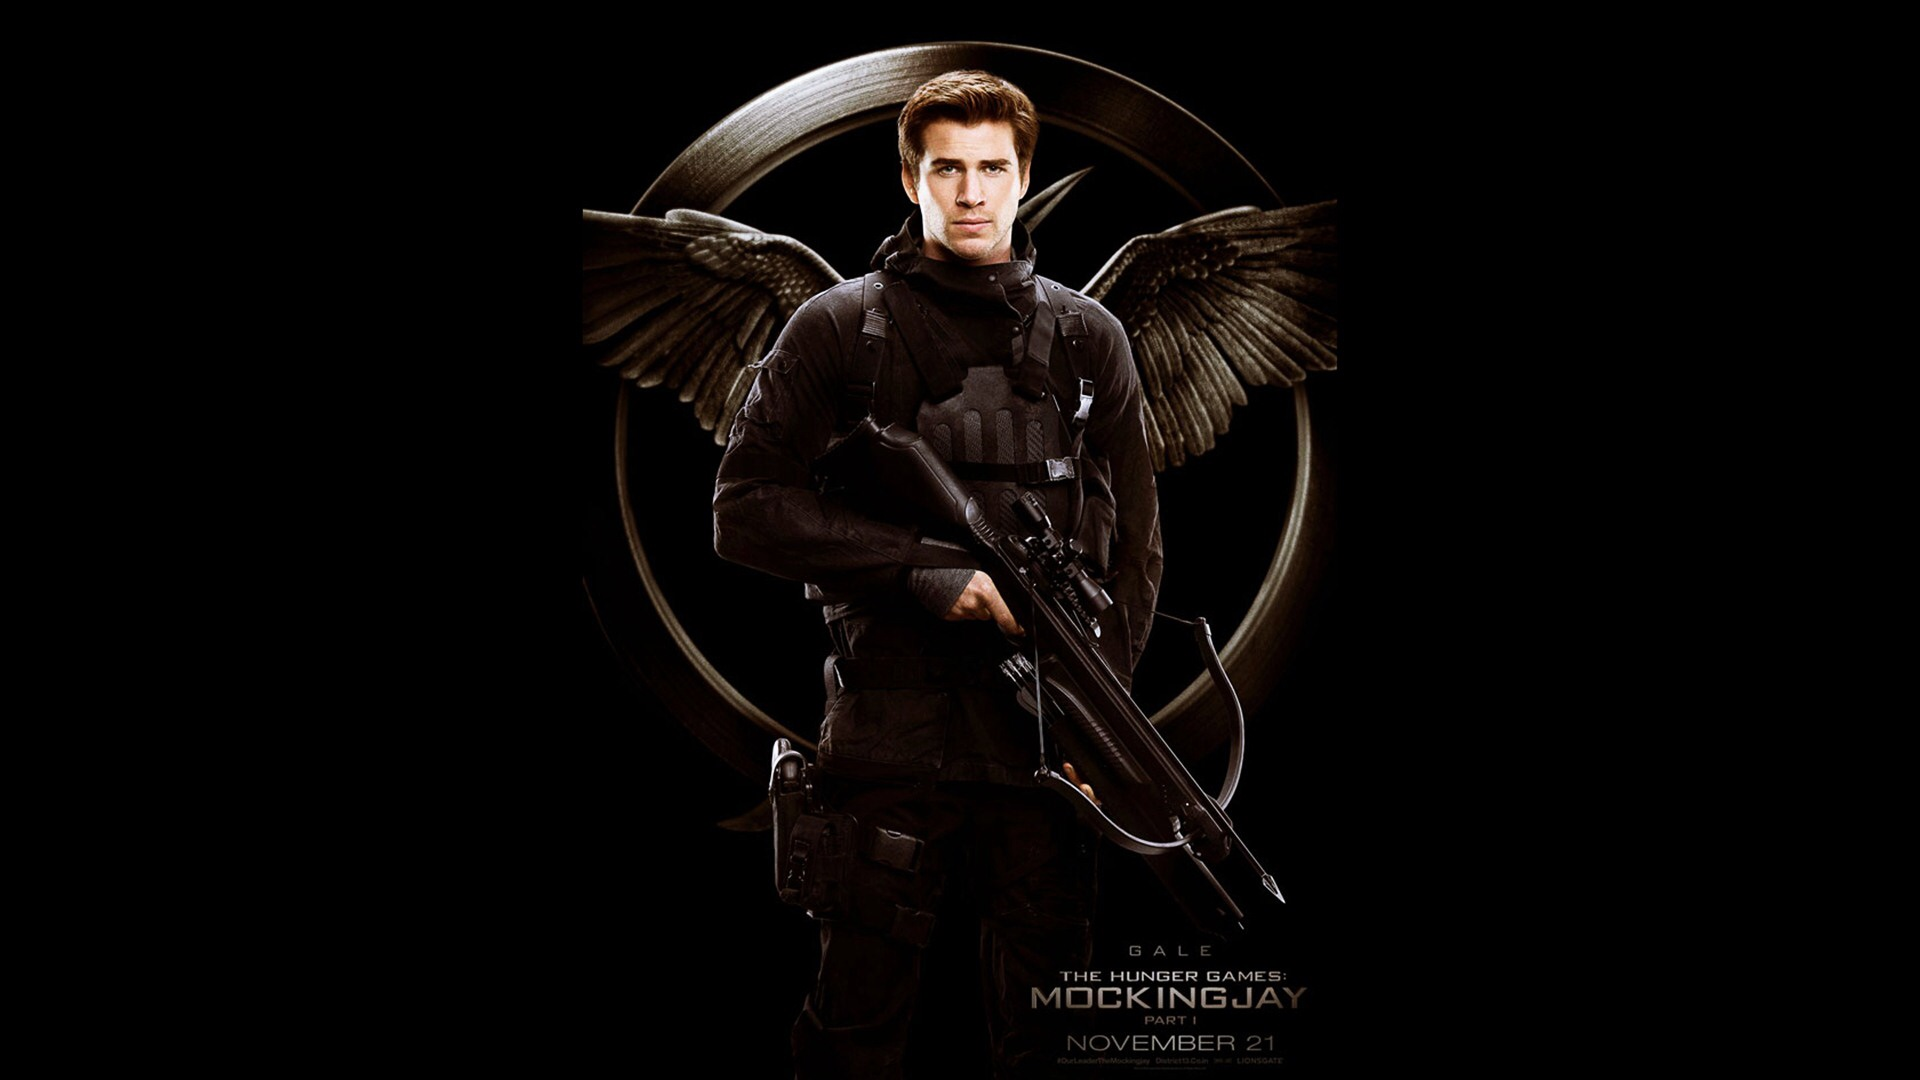 Mockingjay Part 1 Wallpaper